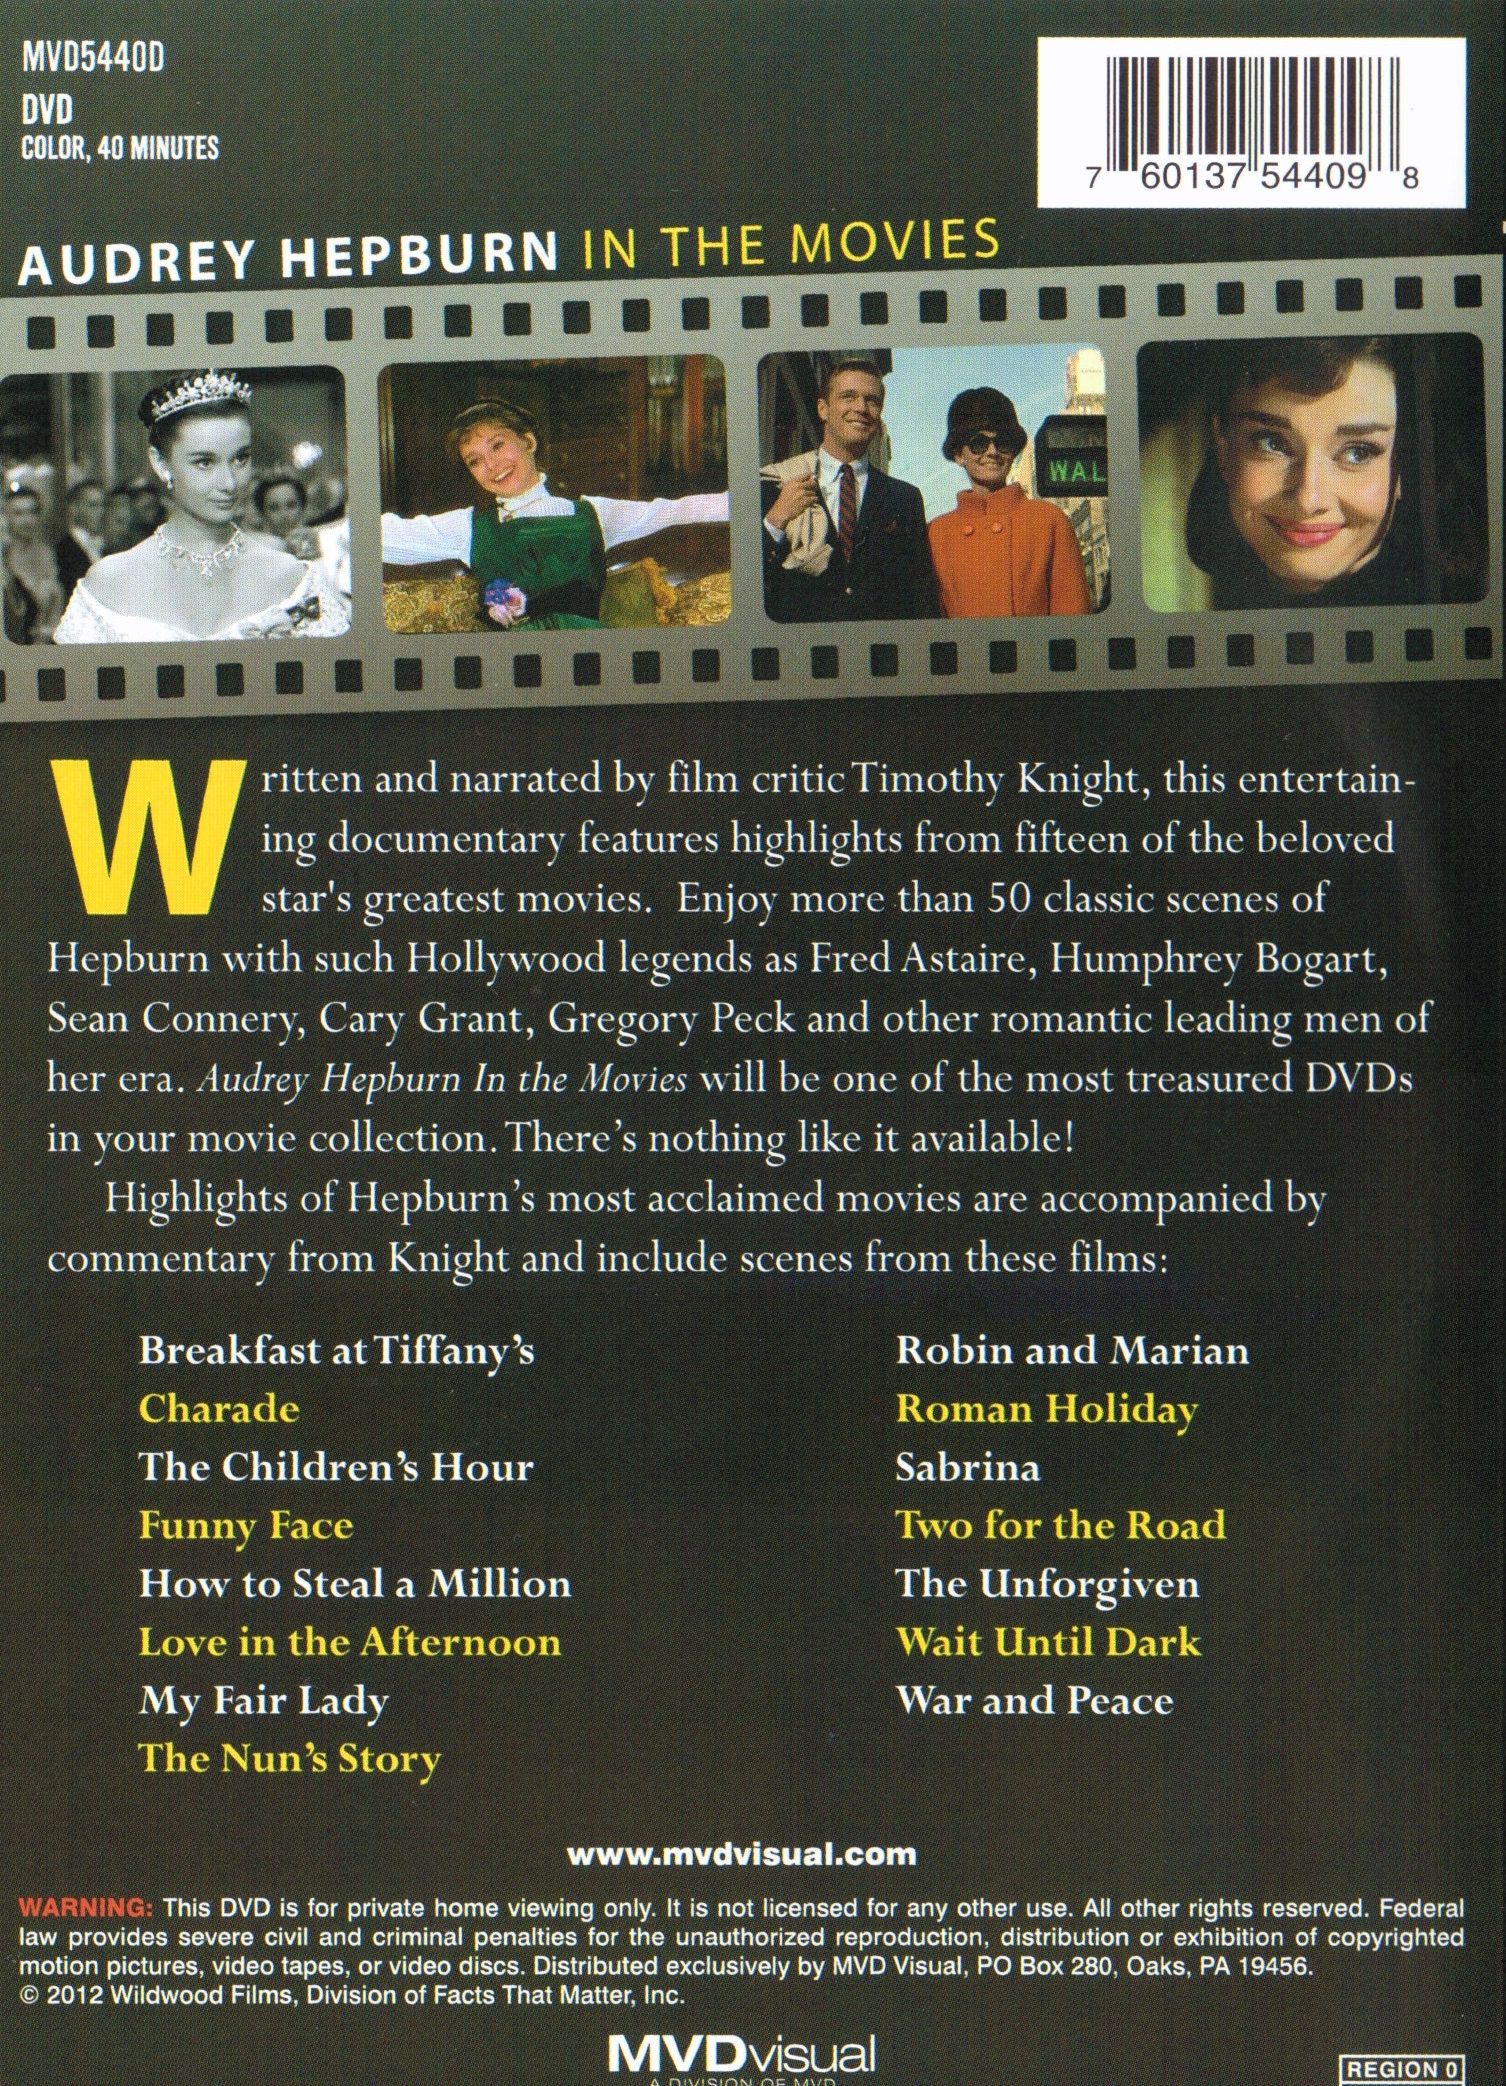 Audrey Hepburn In The Movies DVD back cover